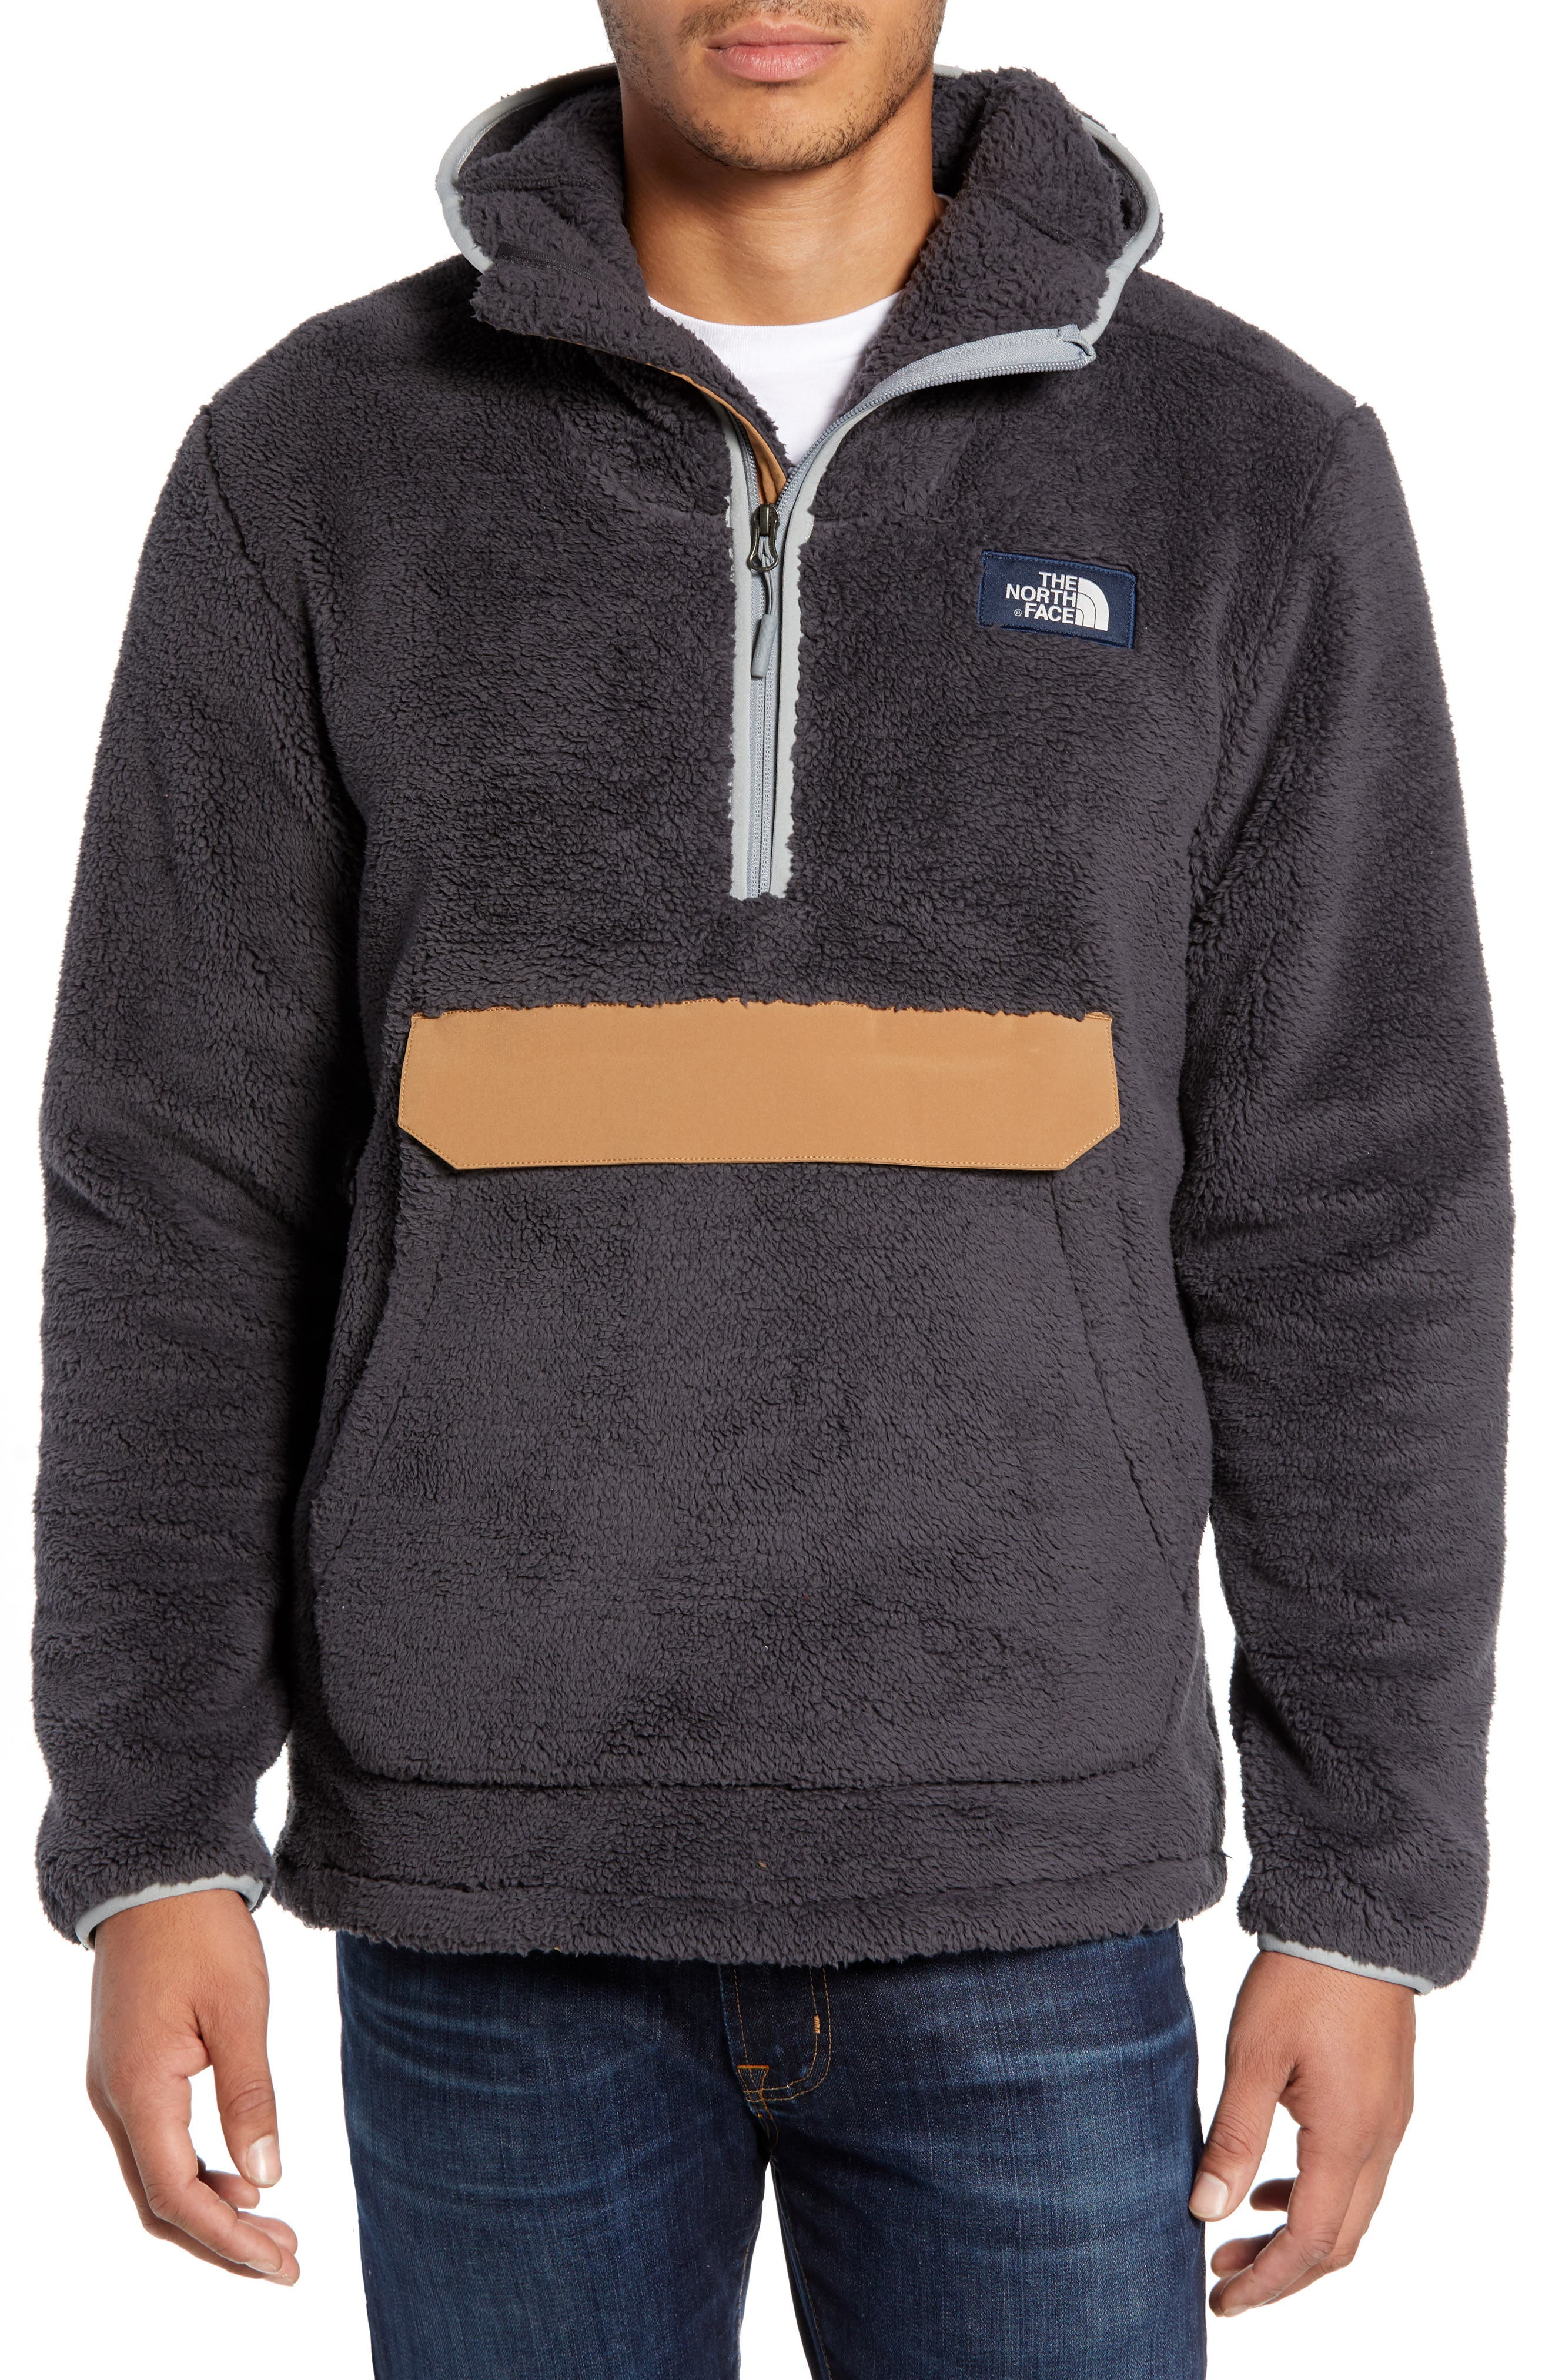 THE NORTH FACE, Campshire Anorak Fleece Jacket, Main thumbnail 1, color, 001